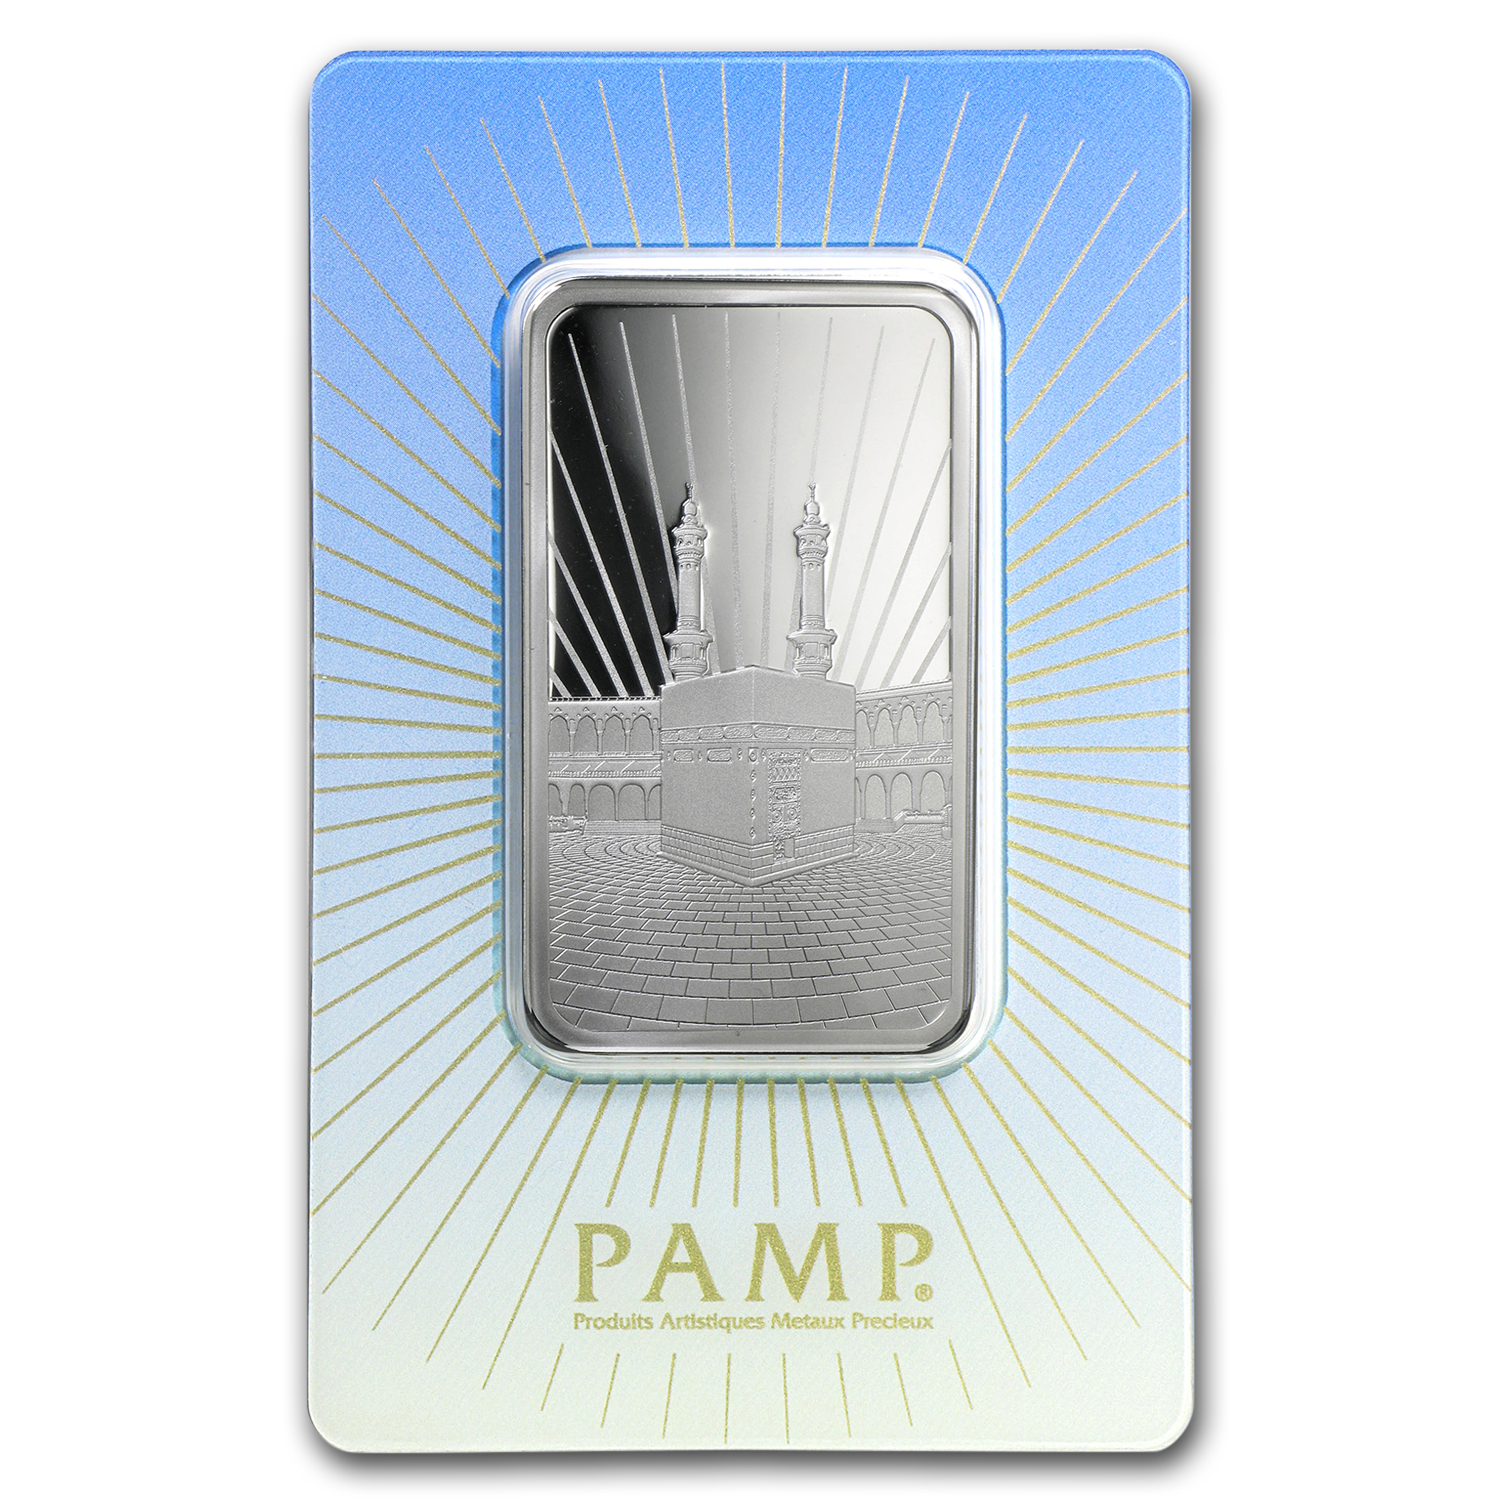 1 oz Silver Bar - PAMP Suisse Religious Series (Ka' Bah, Mecca)